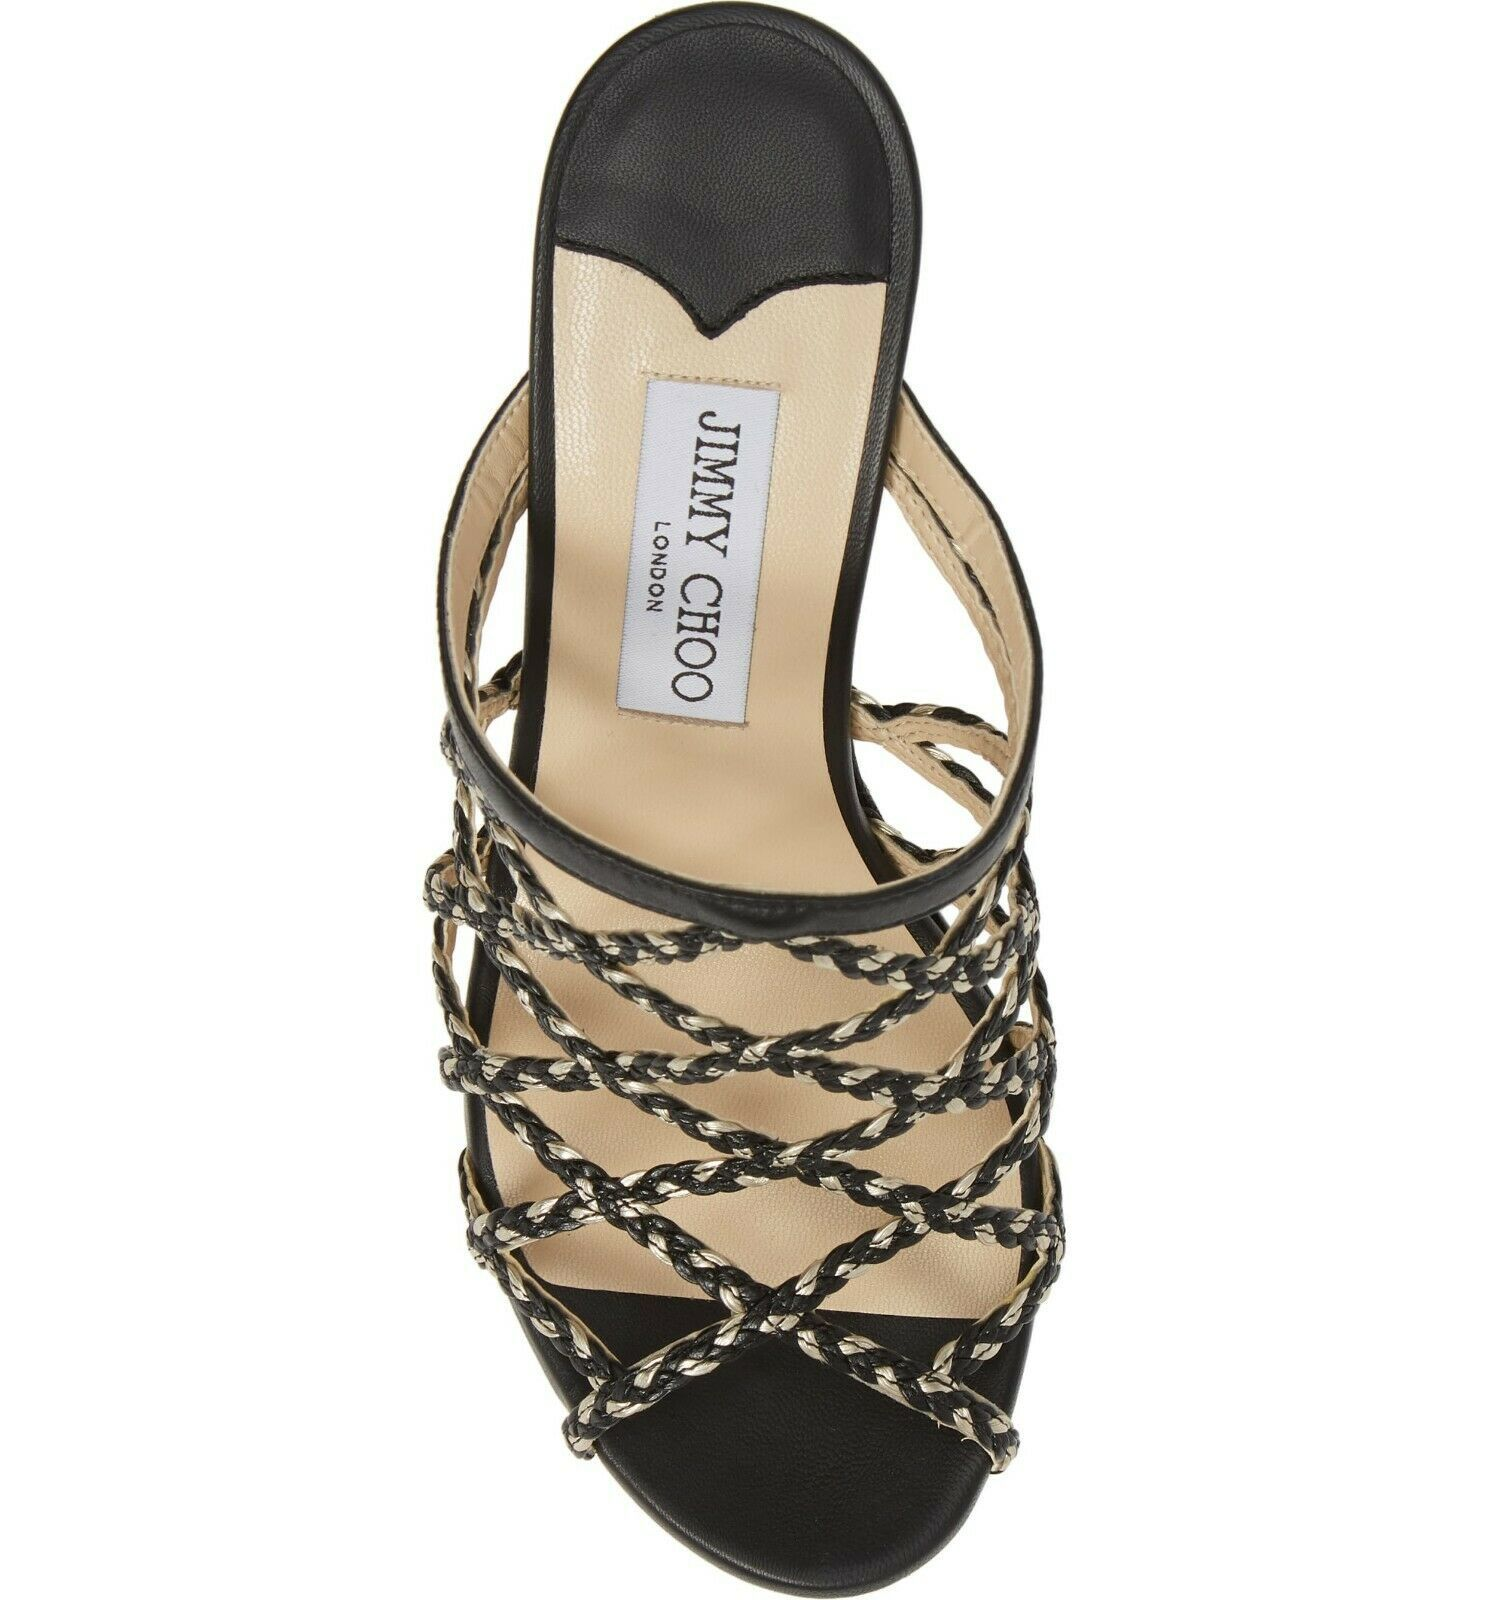 JIMMY CHOO Platform Slide Sandals Size 39.5 MSRP: $595.00